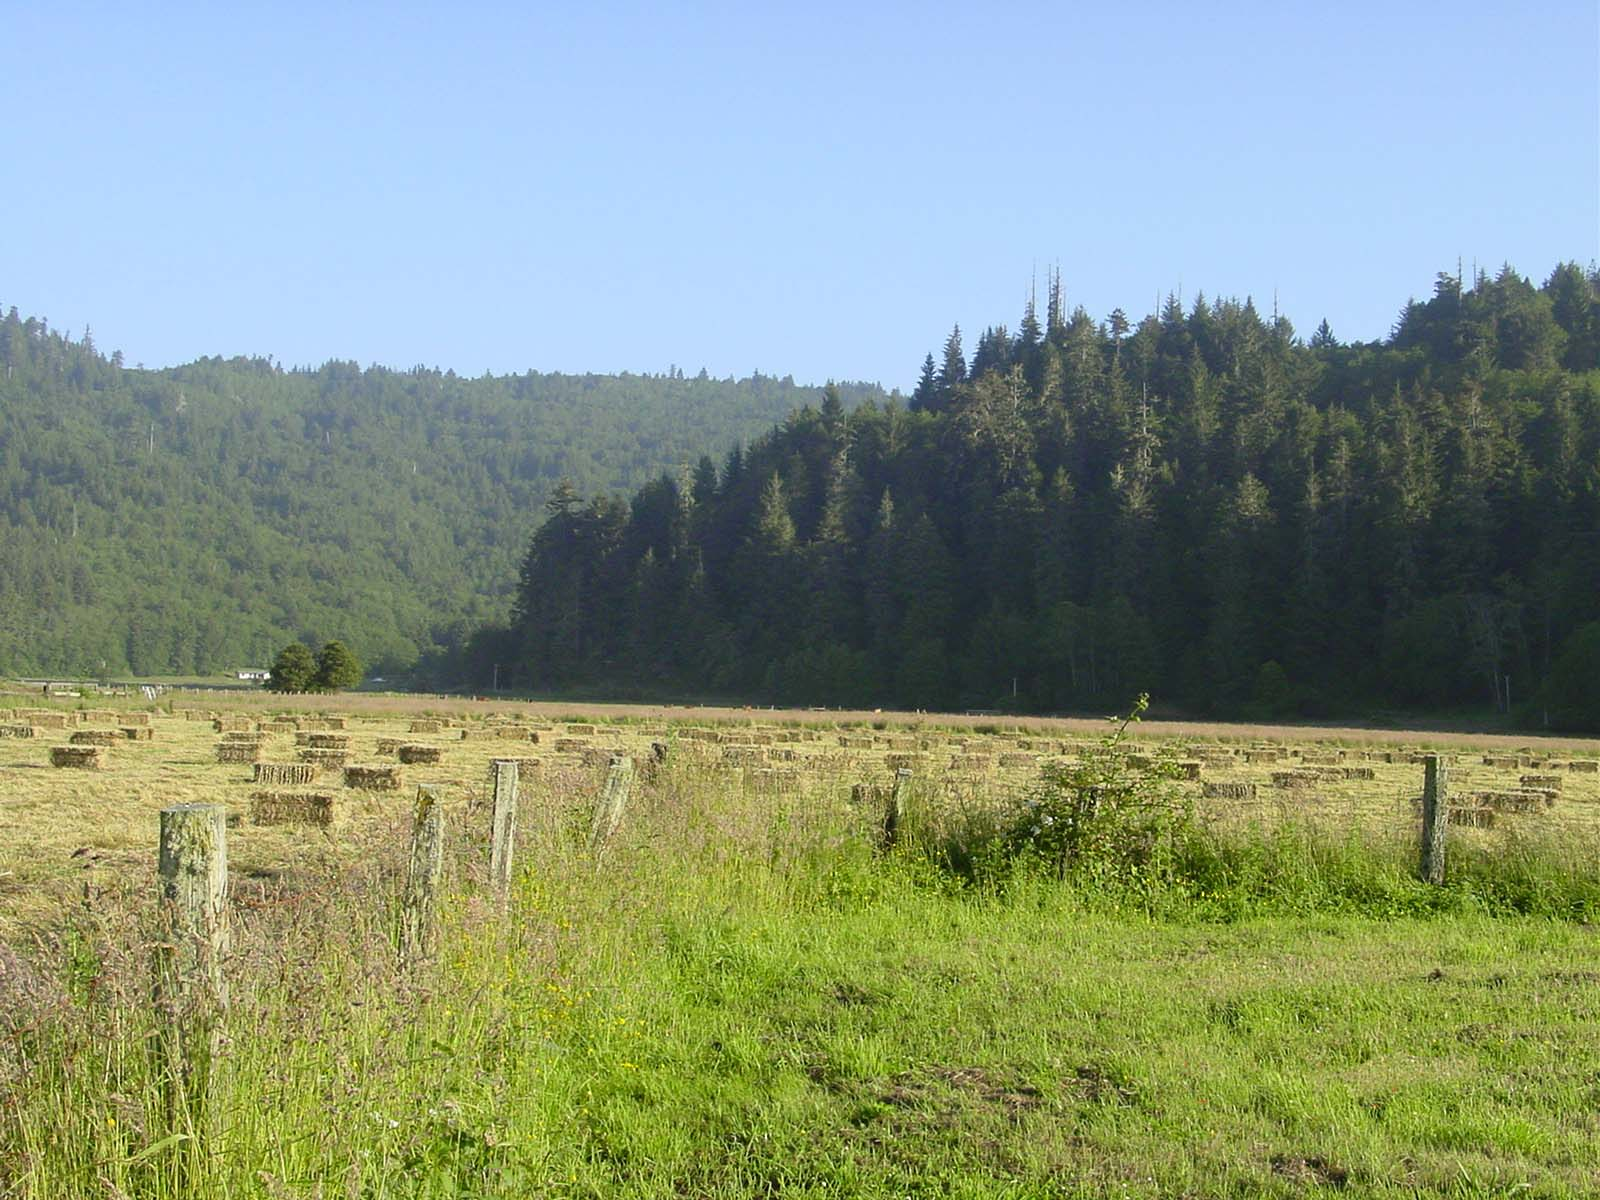 Photo of a fenced field containing bailed hay with two wooded ridges in the background